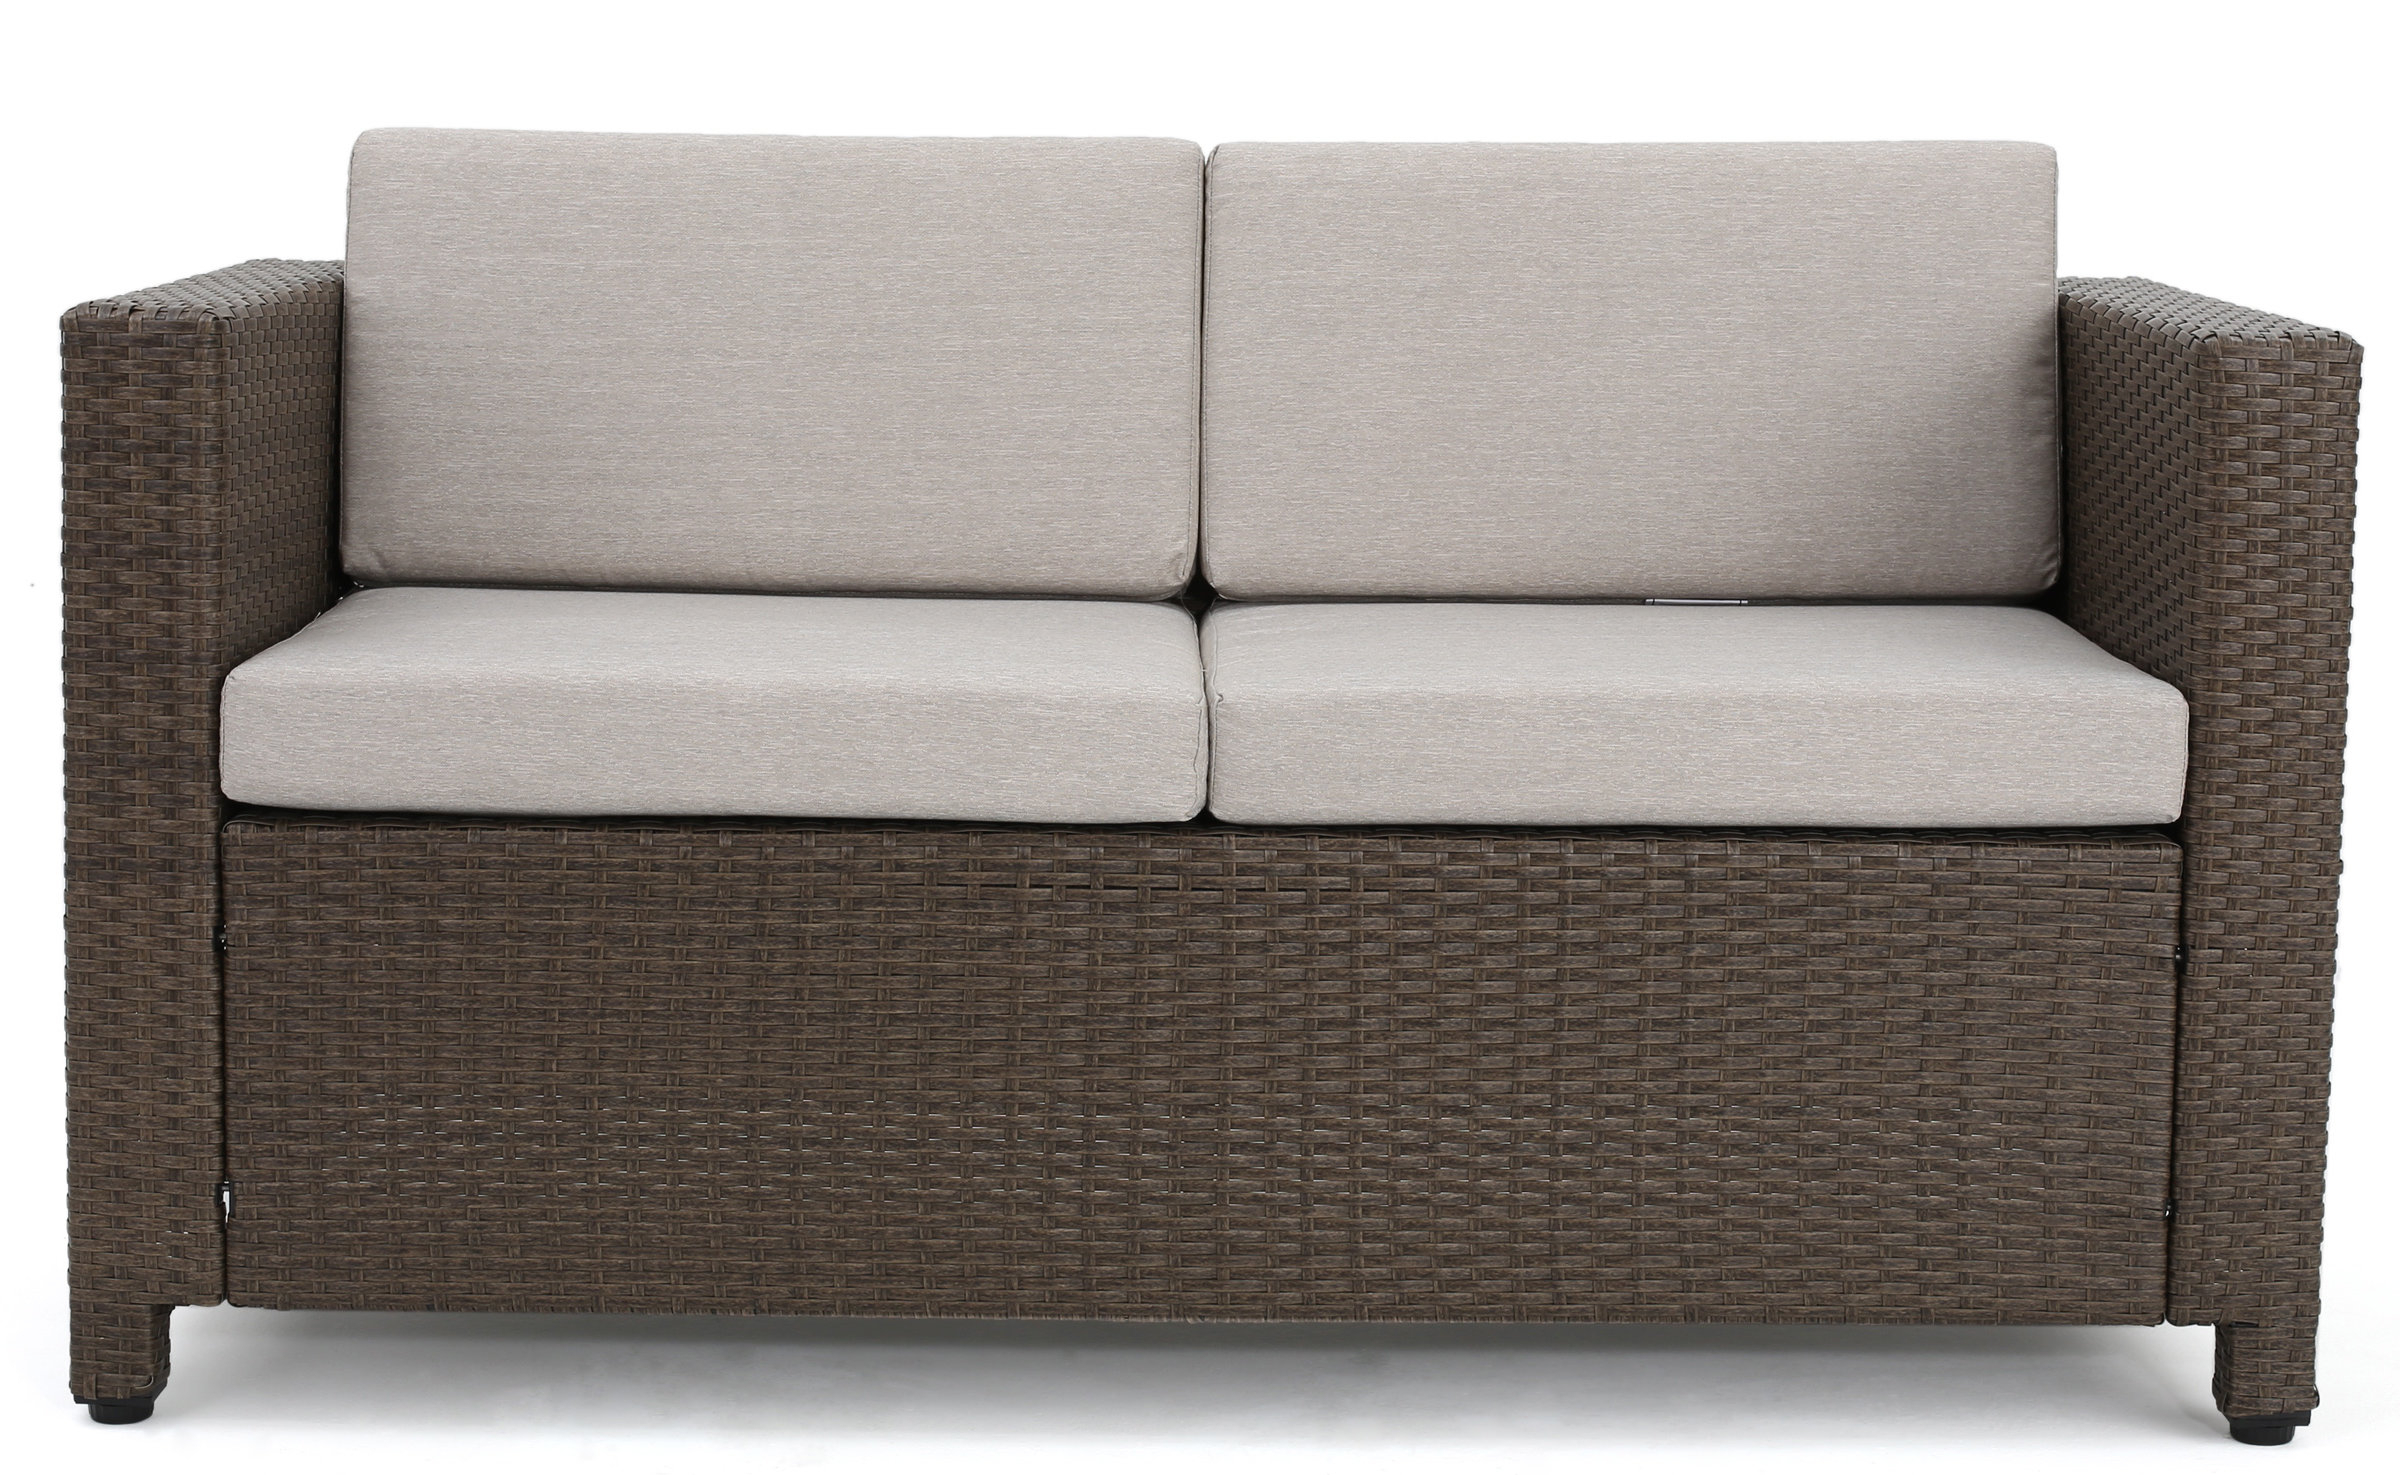 Furst Patio Sofas With Cushion In Fashionable Furst Outdoor Loveseat With Cushions (View 4 of 20)